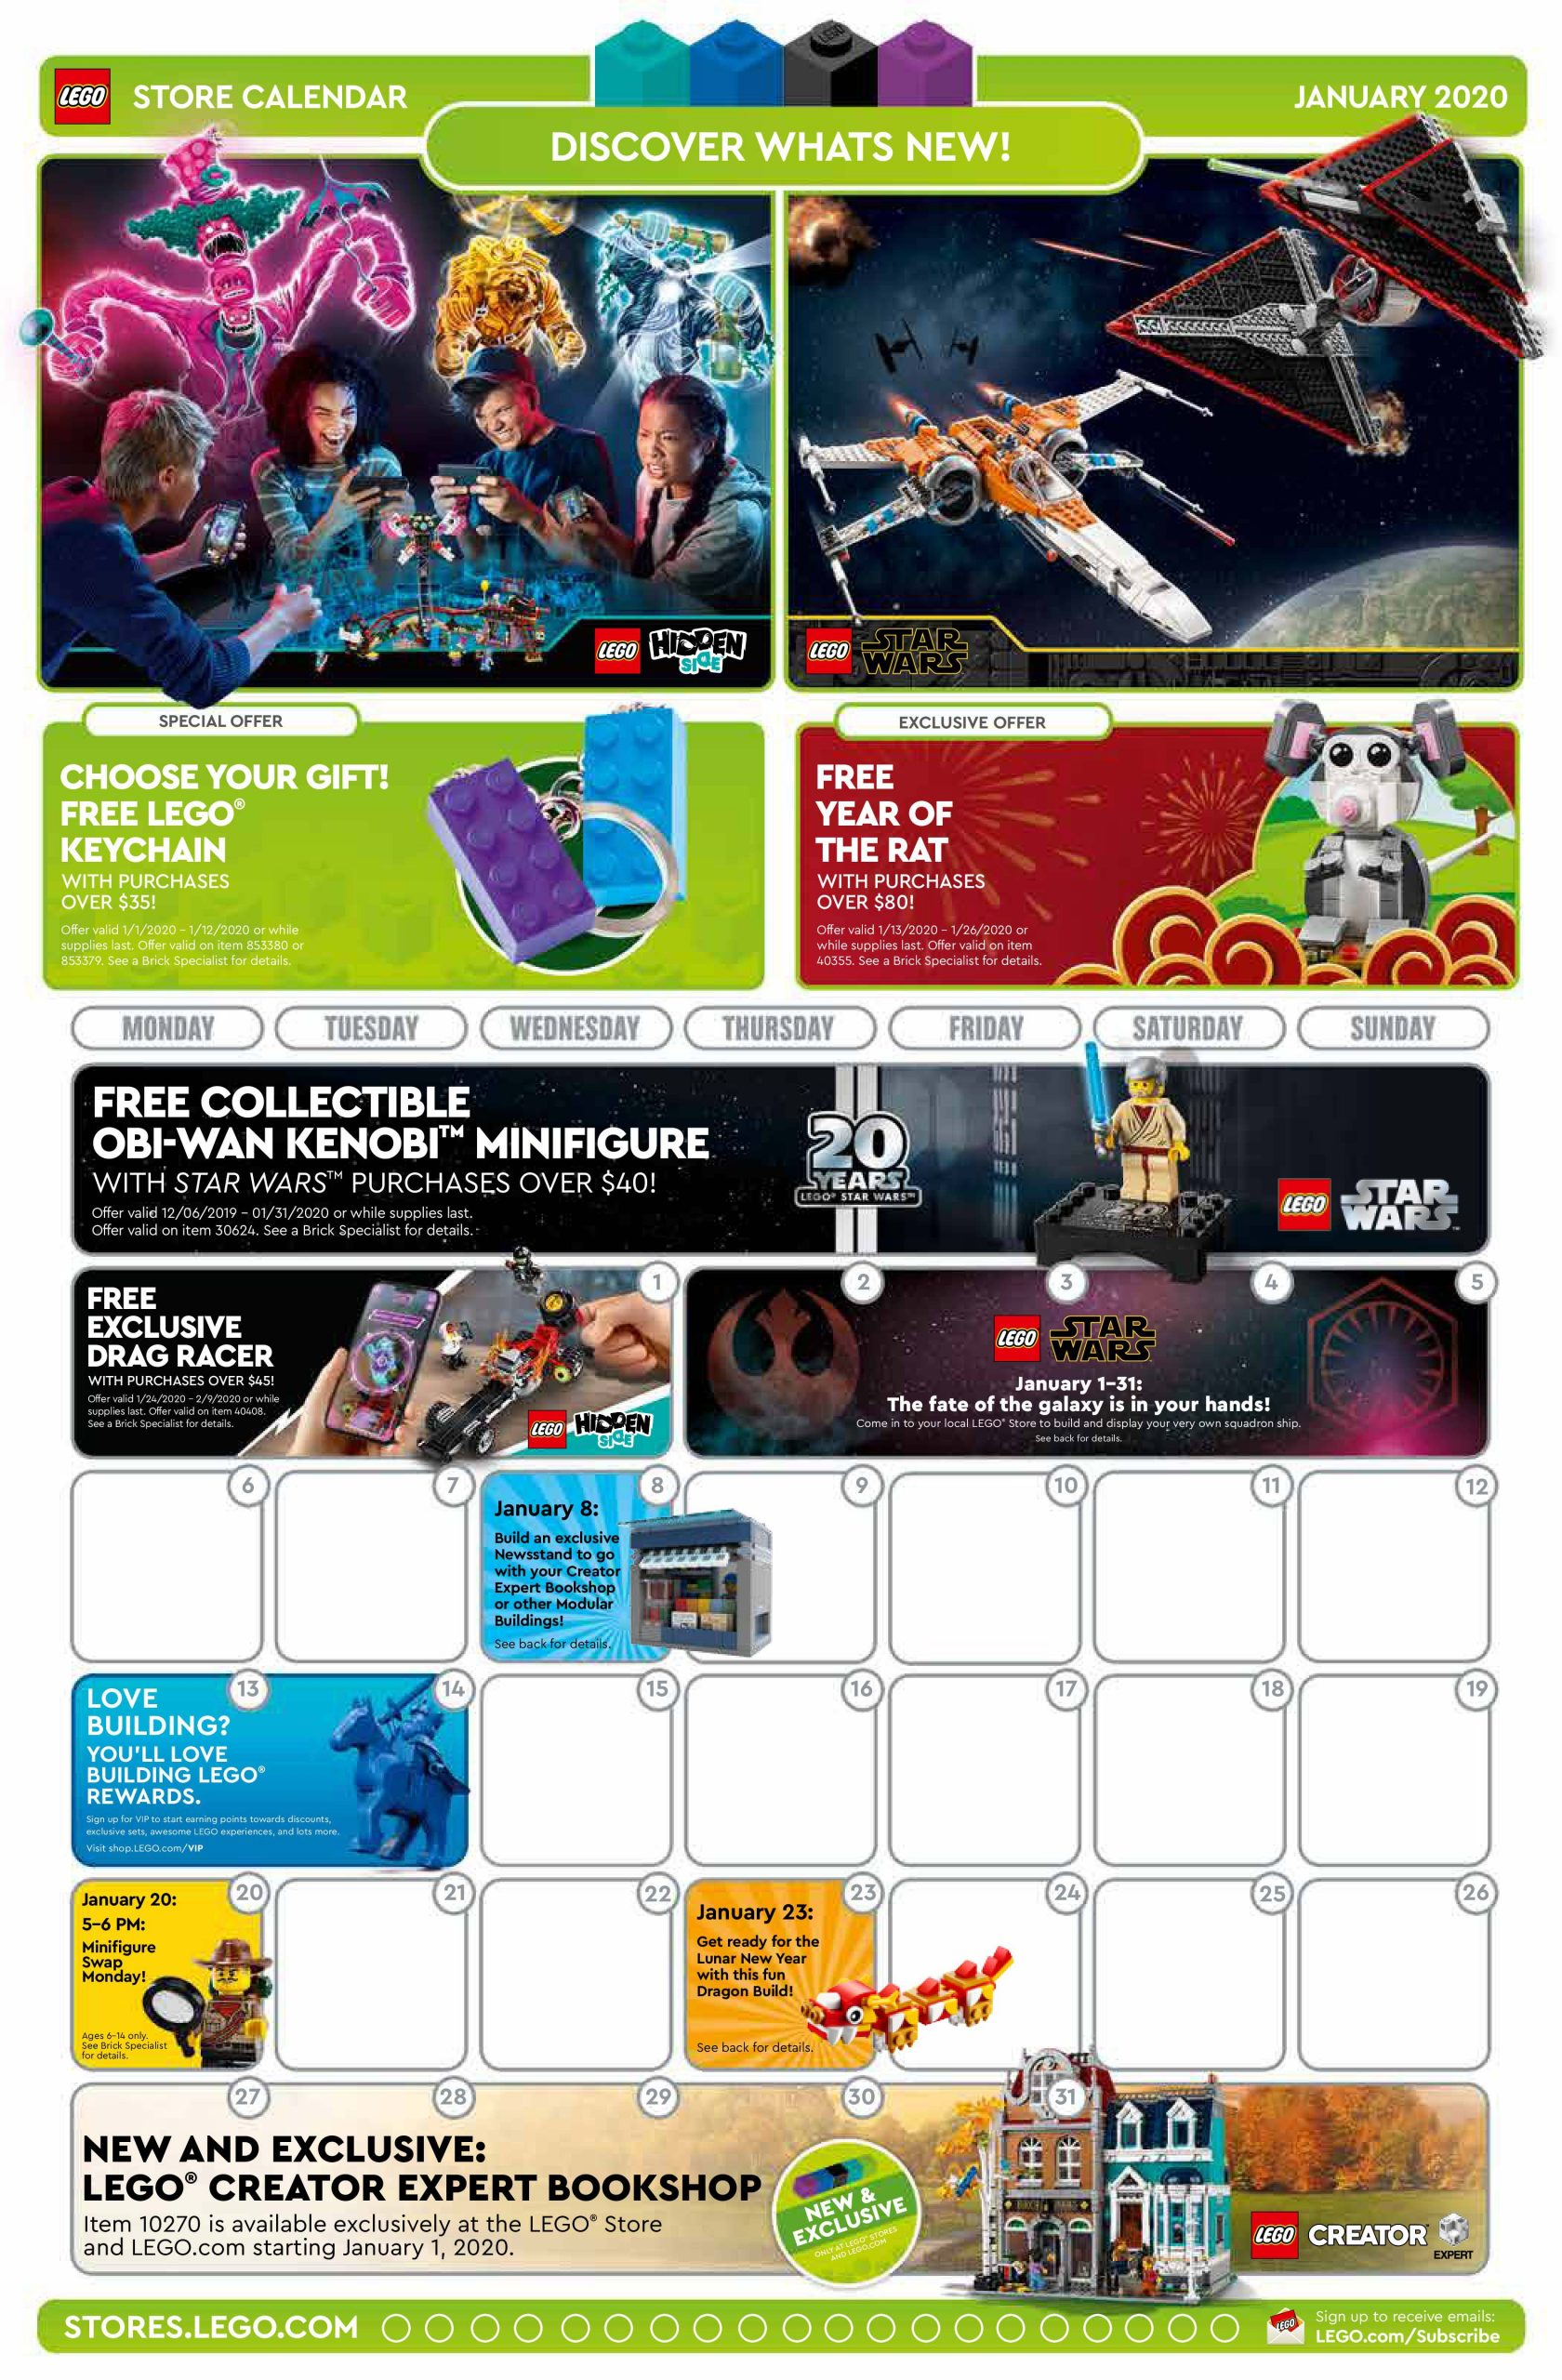 Lego Calendar May 2021 LEGO January 2020 Store Calendar Promotions & Events – The Brick Fan